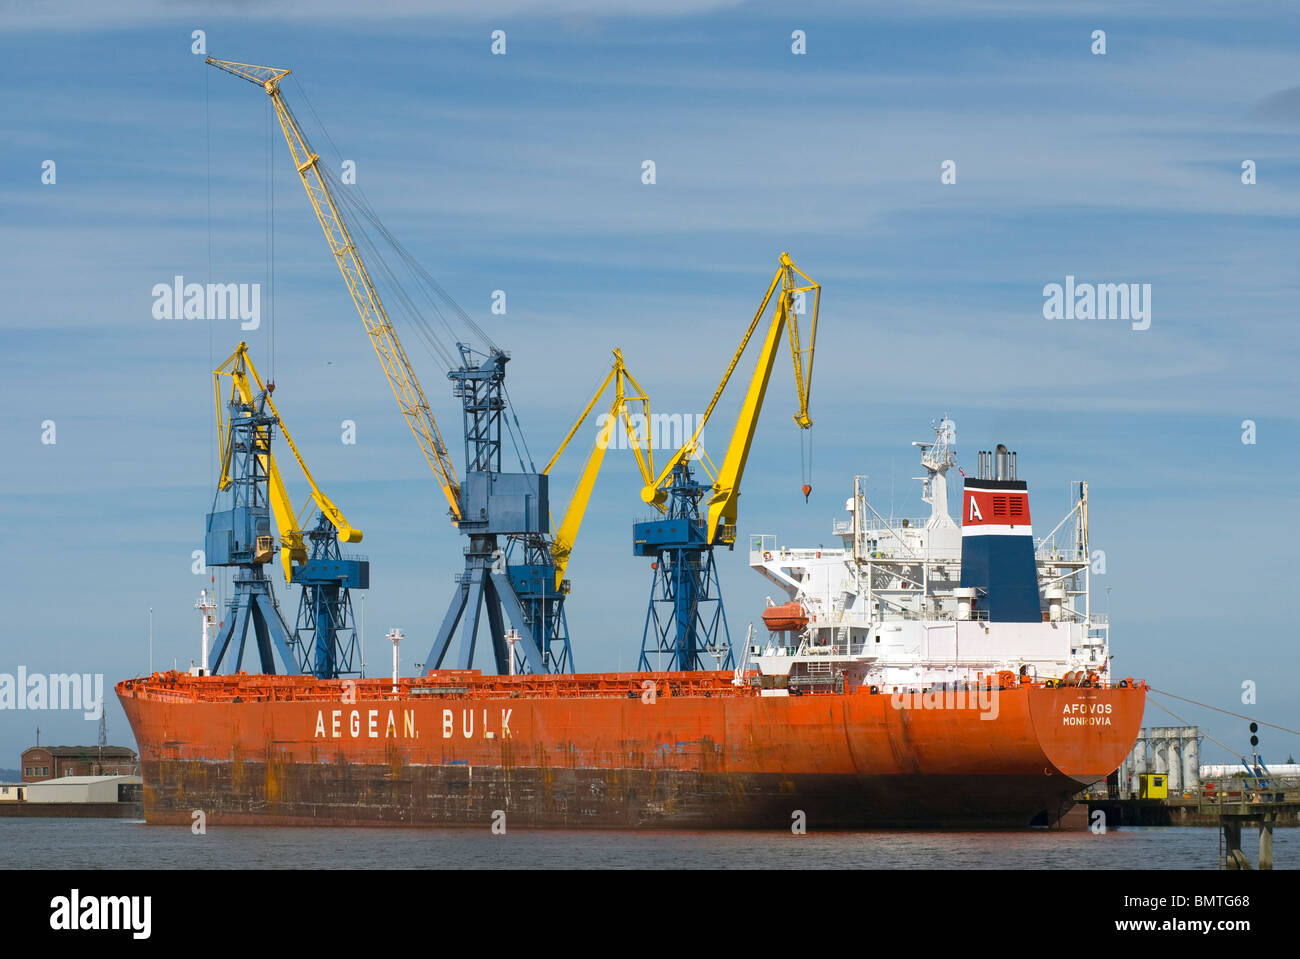 Bulk carrier 'Afovos' at maintenance wharf, Belfast, Northern Ireland. - Stock Image